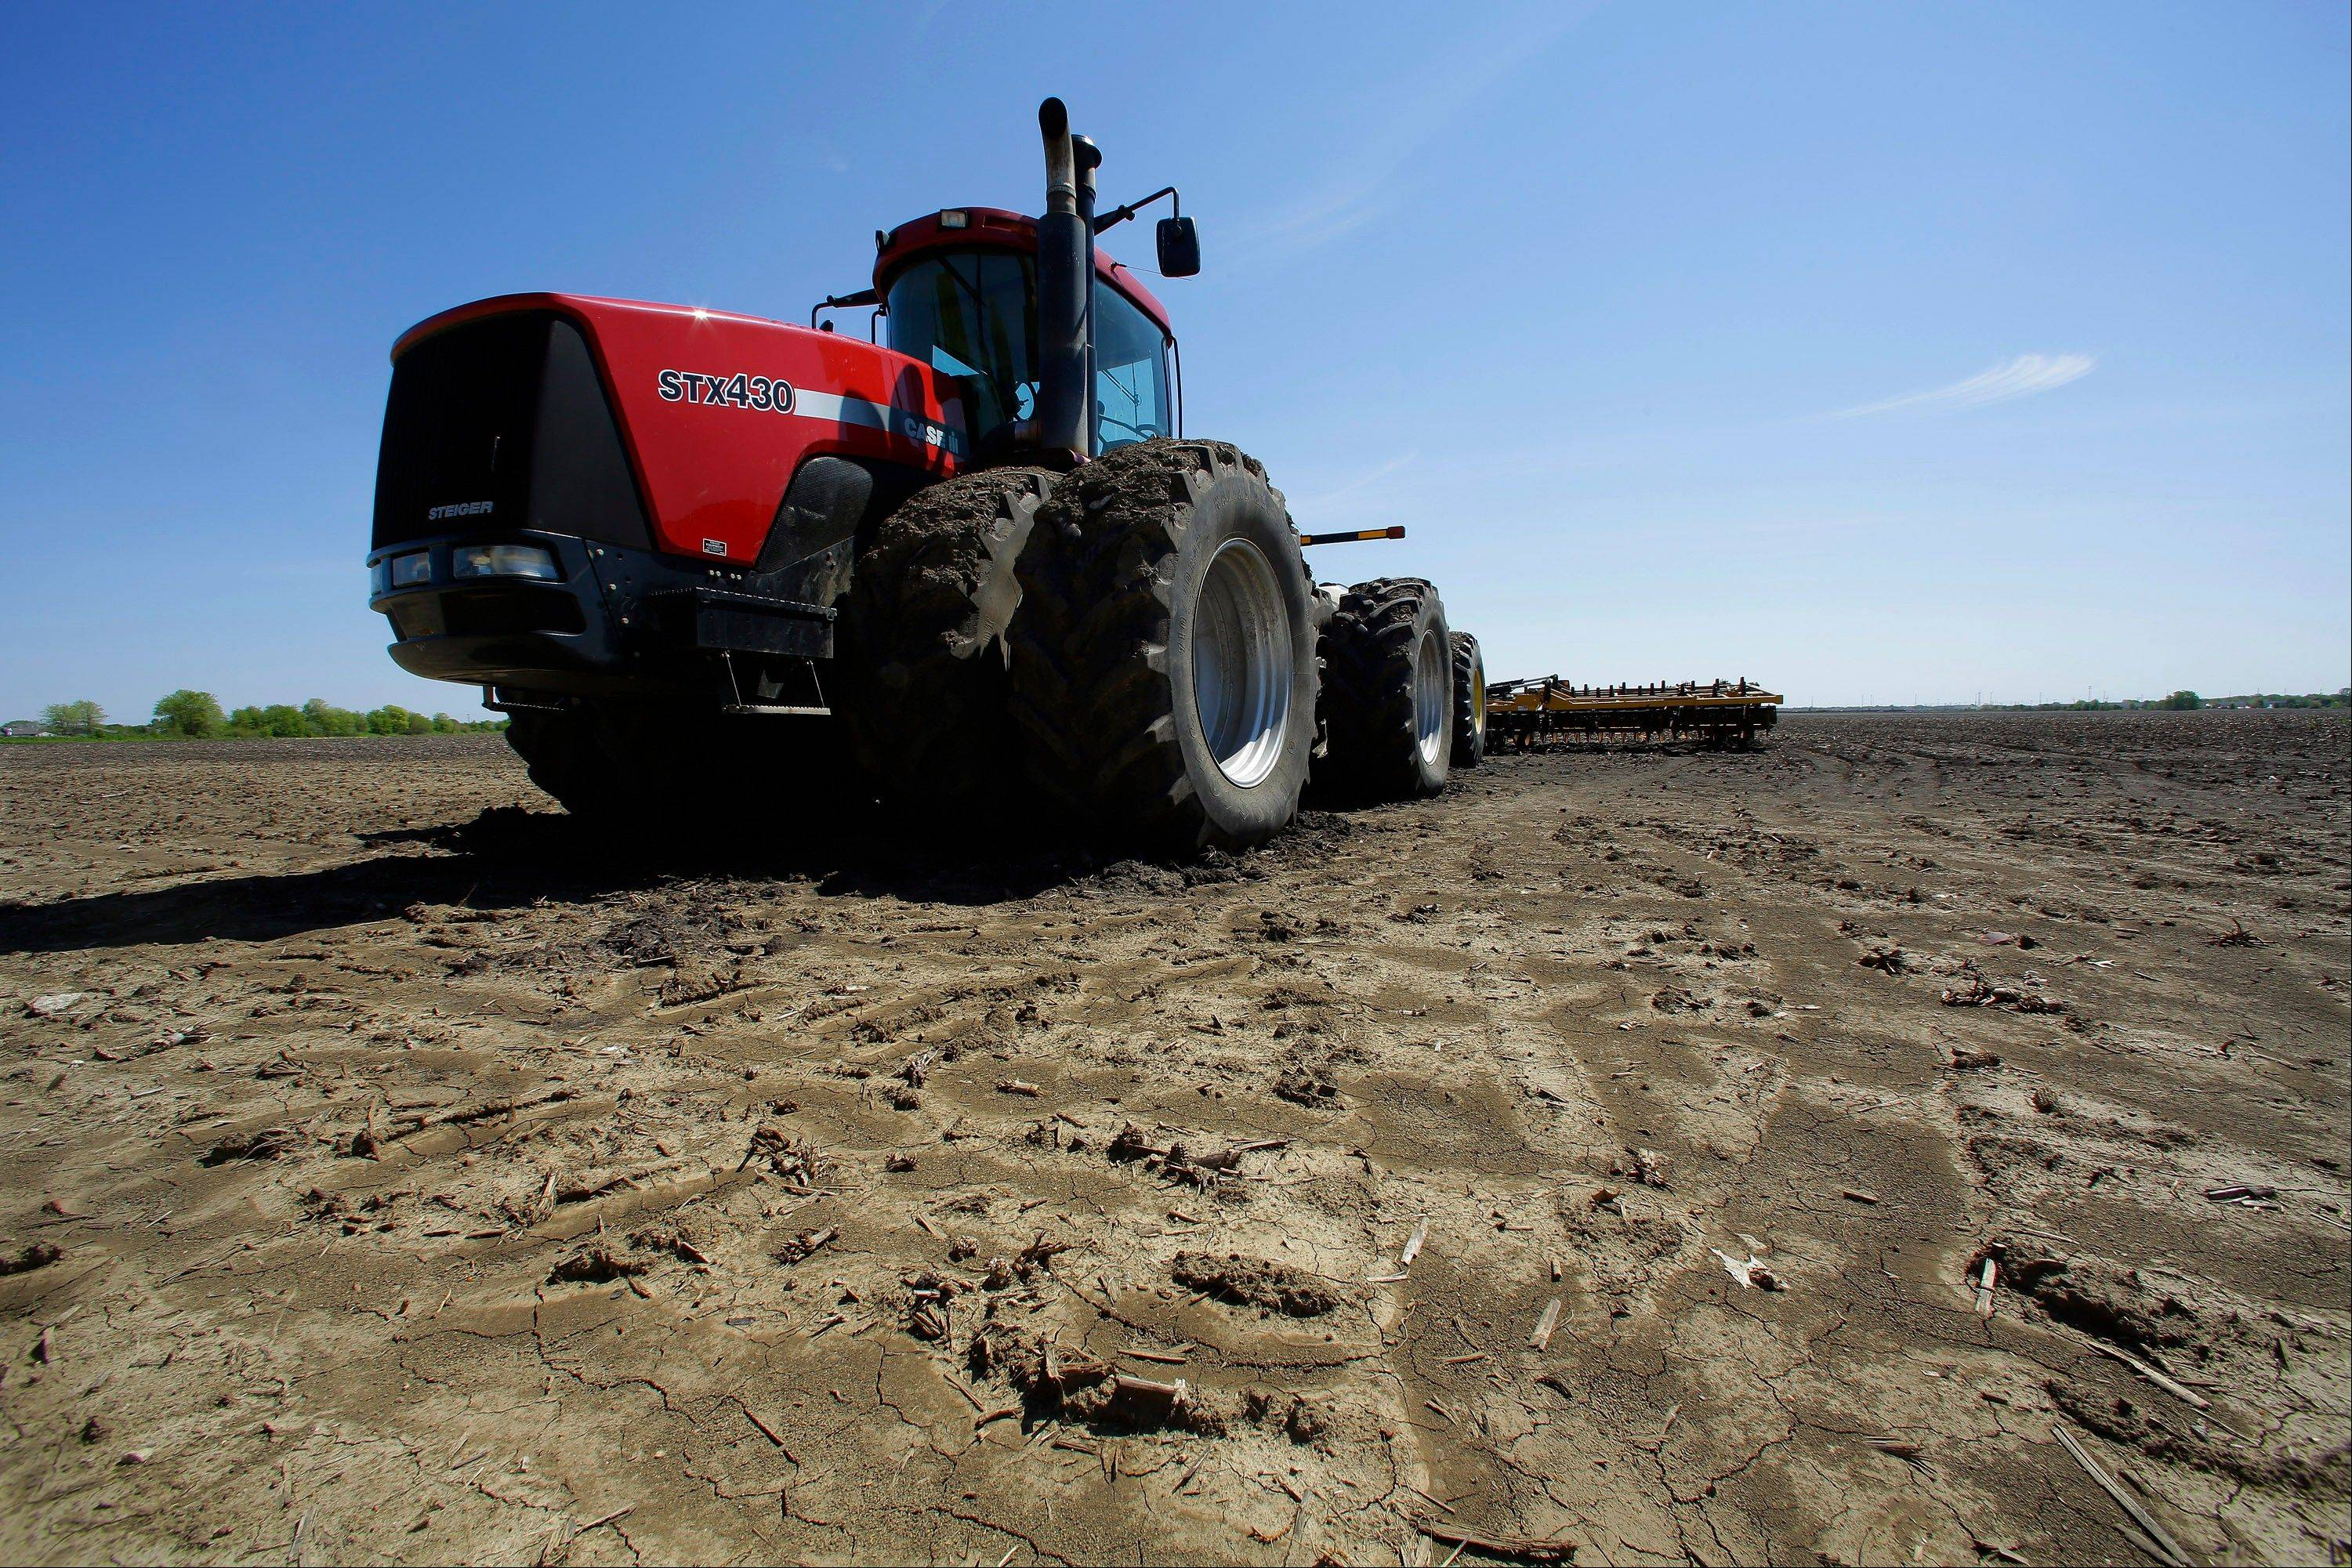 A tractor with cultivator sits idle after being delayed by wet weather earlier this month preventing central Illinois farmers from starting their spring planting of corn crops Monday.